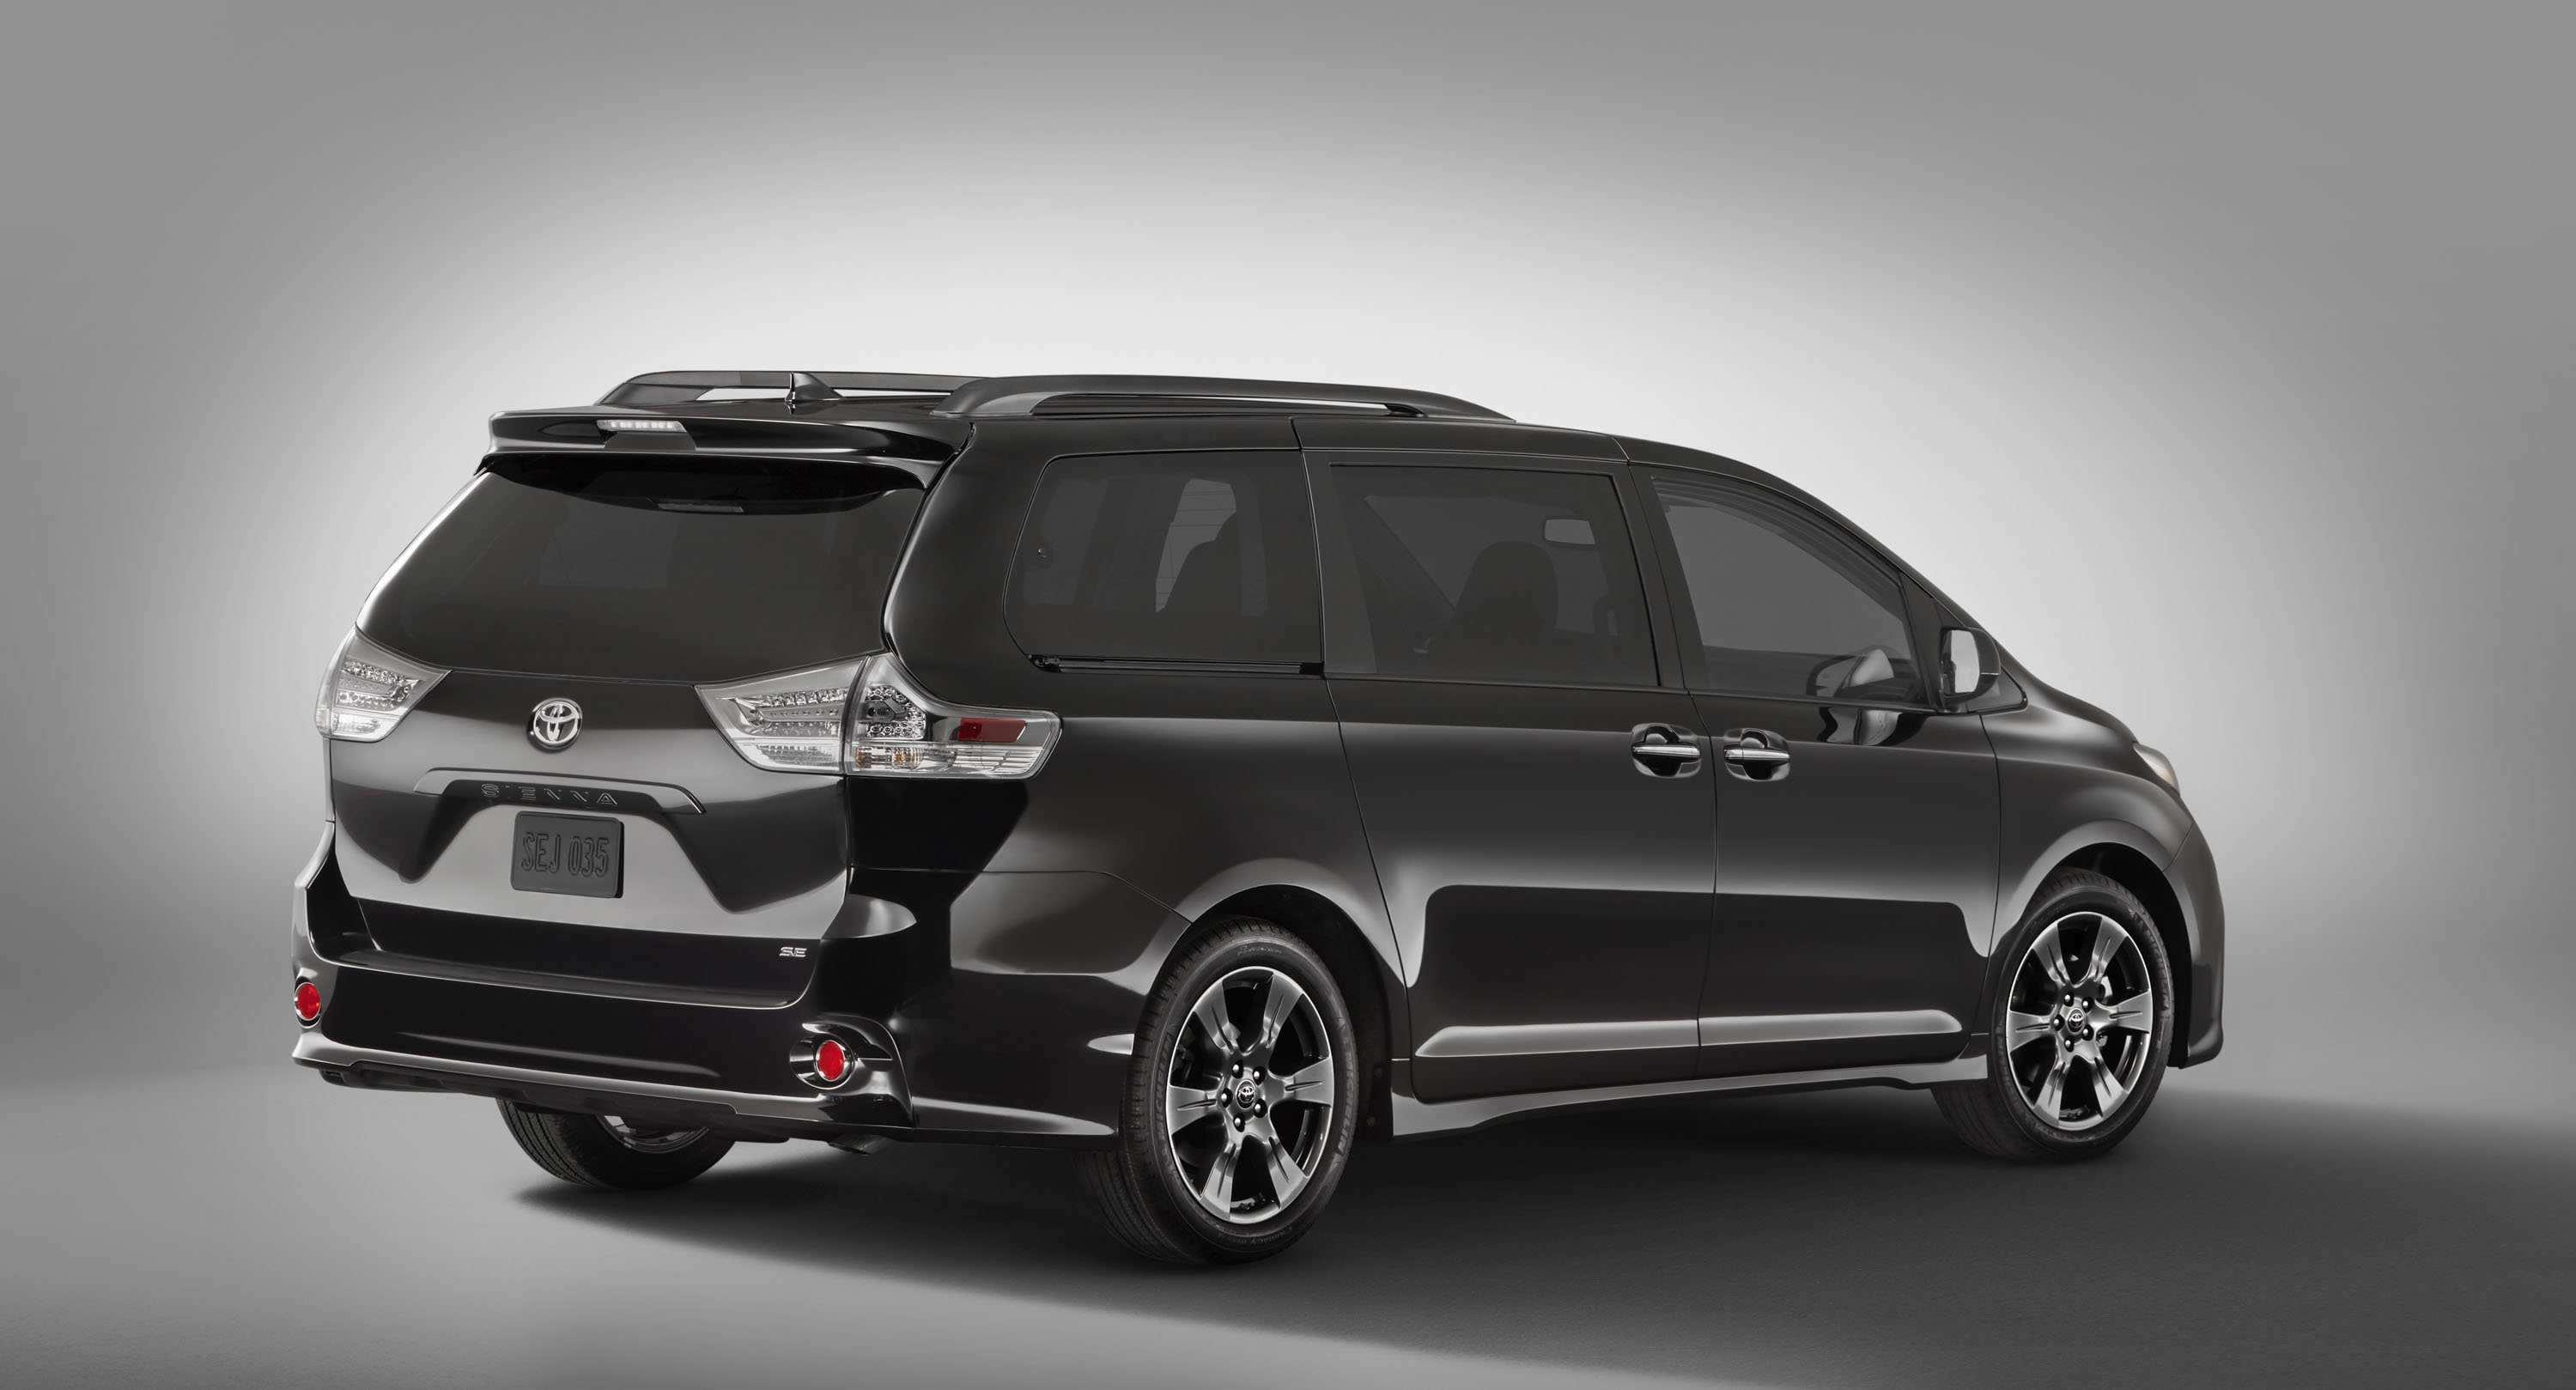 46 New 2020 Minivans Performance and New Engine for 2020 Minivans